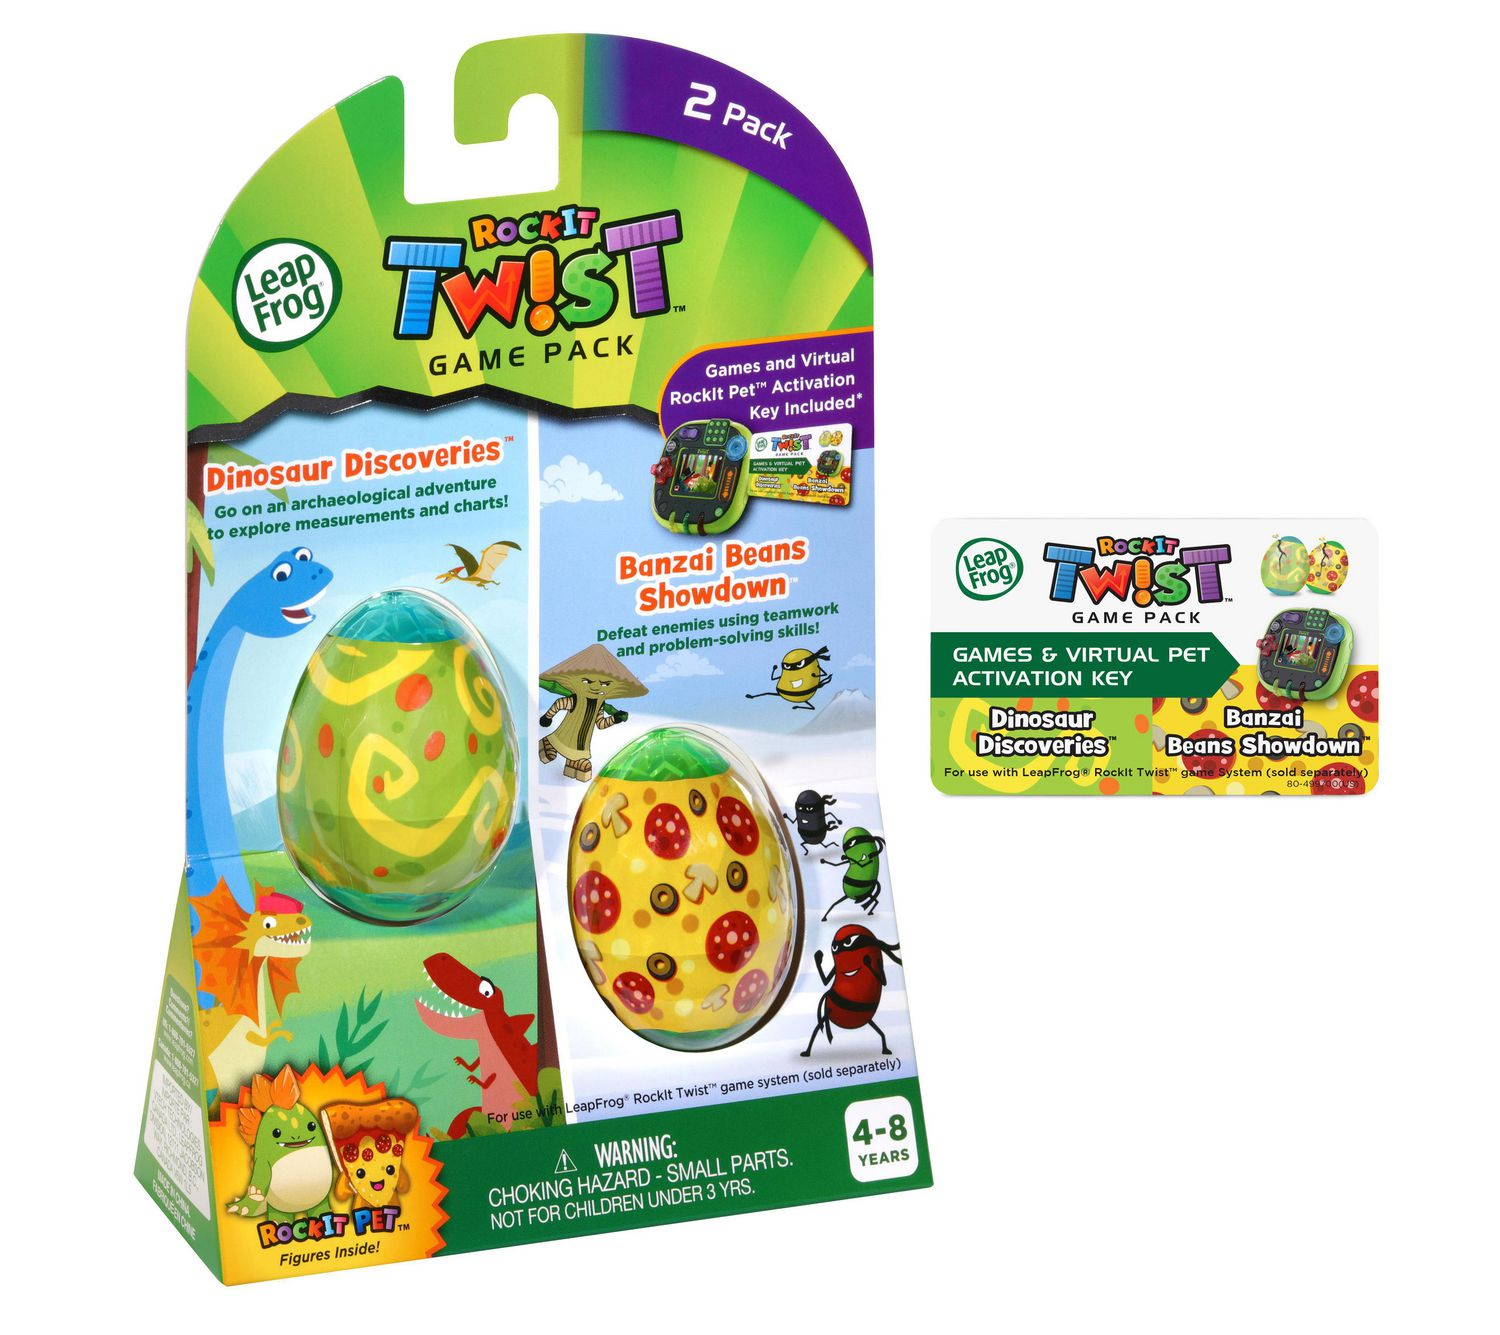 Dinosaur Discoveries and Banzai Beans Show LeapFrog RockIt Twist Dual Game Pack